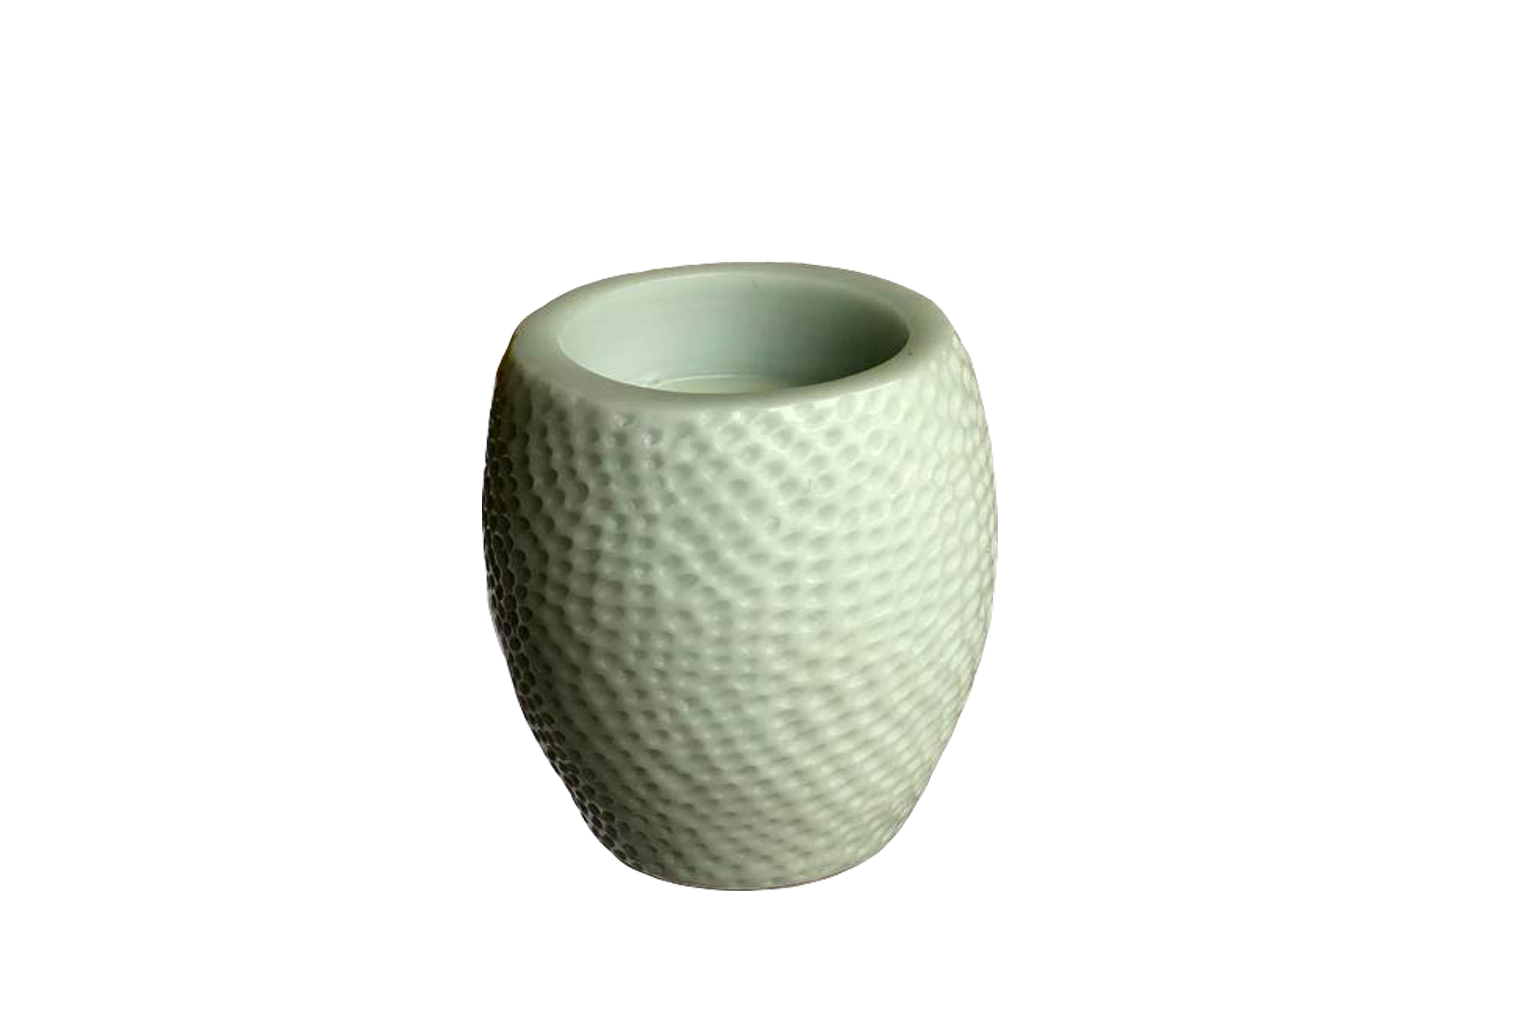 Mint Hammered Beeswax Candle - Small - S$35